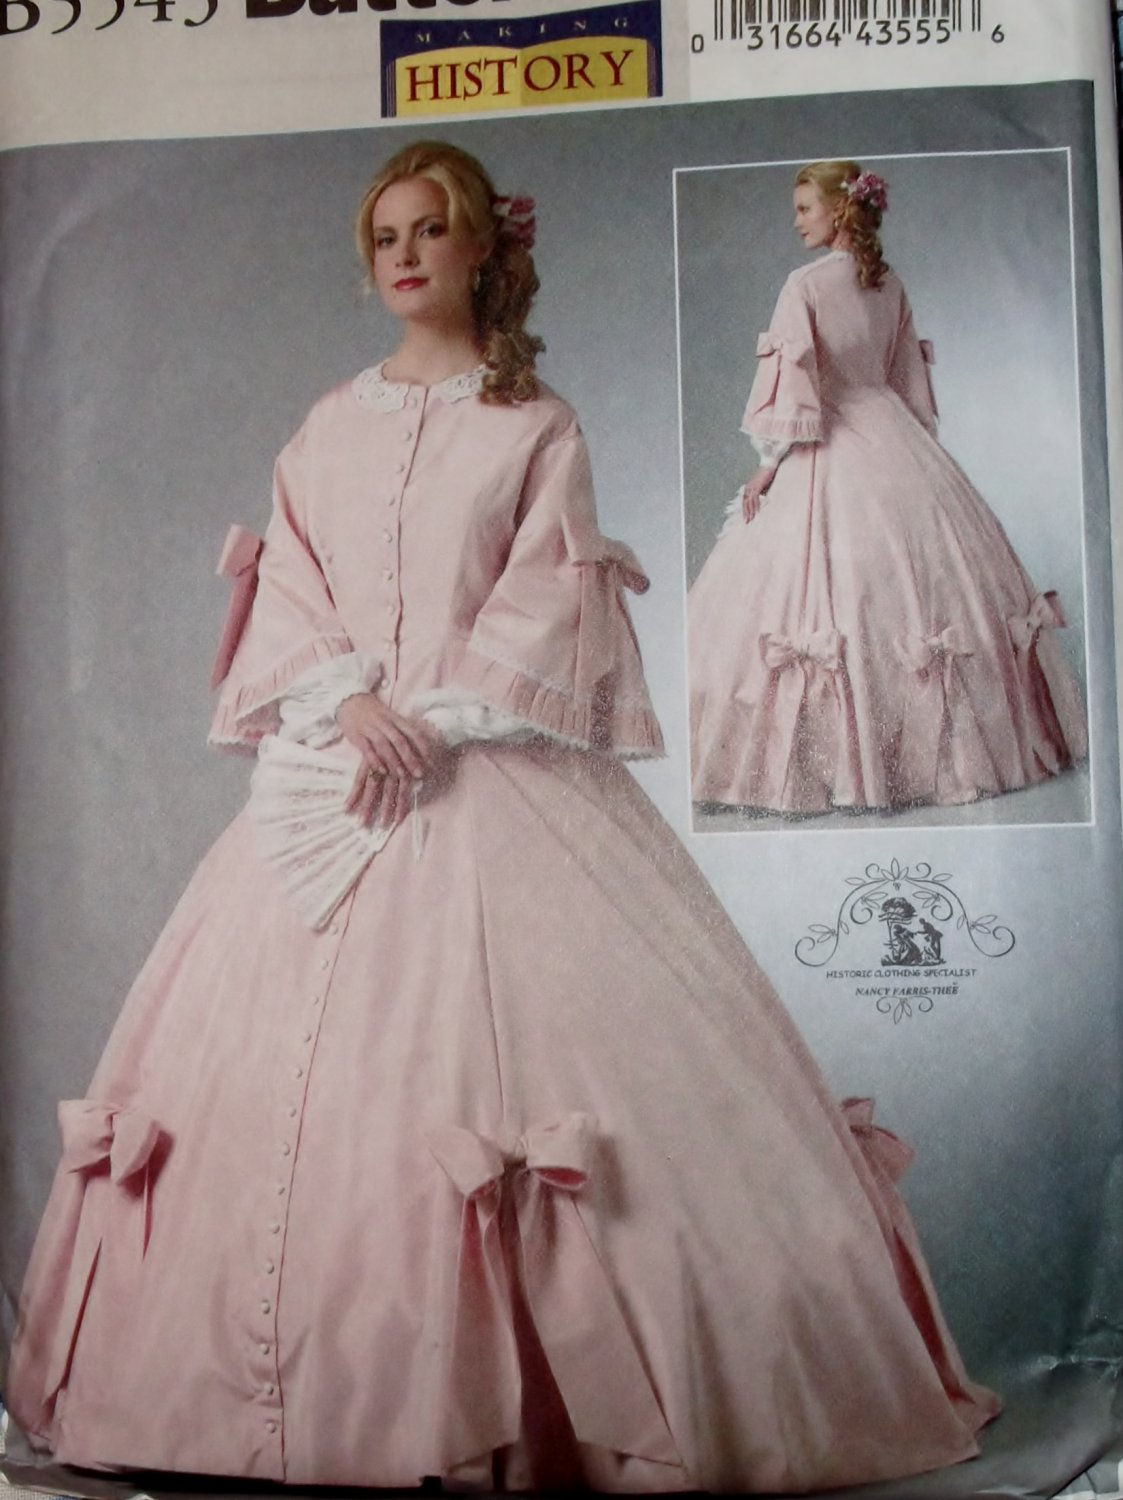 Making History Misses' Civil War Gown Costume Butterick B5543 Pattern, Plus Size 14 to 20, Uncut